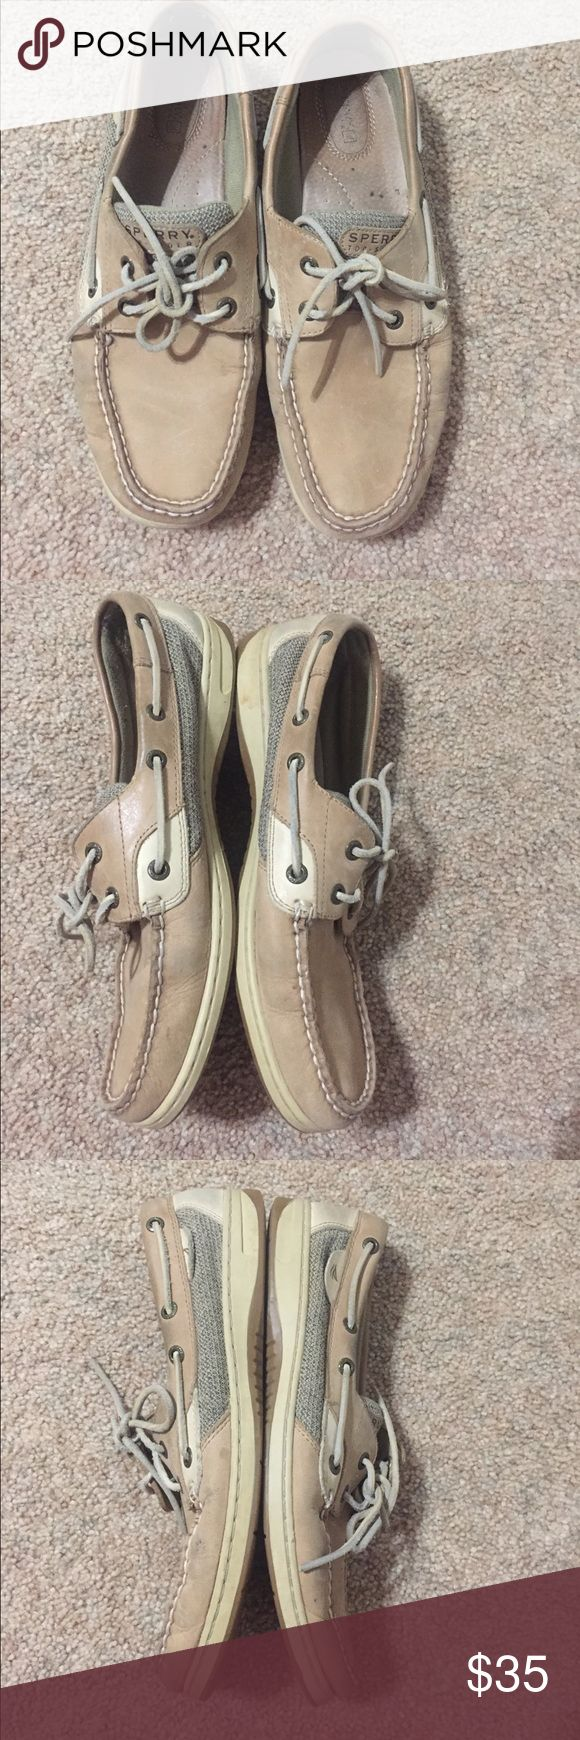 Light Brown Sperry Top Siders Worn a few times, good condition. Another pair of darker sperrys on my page! Sperry Top-Sider Shoes